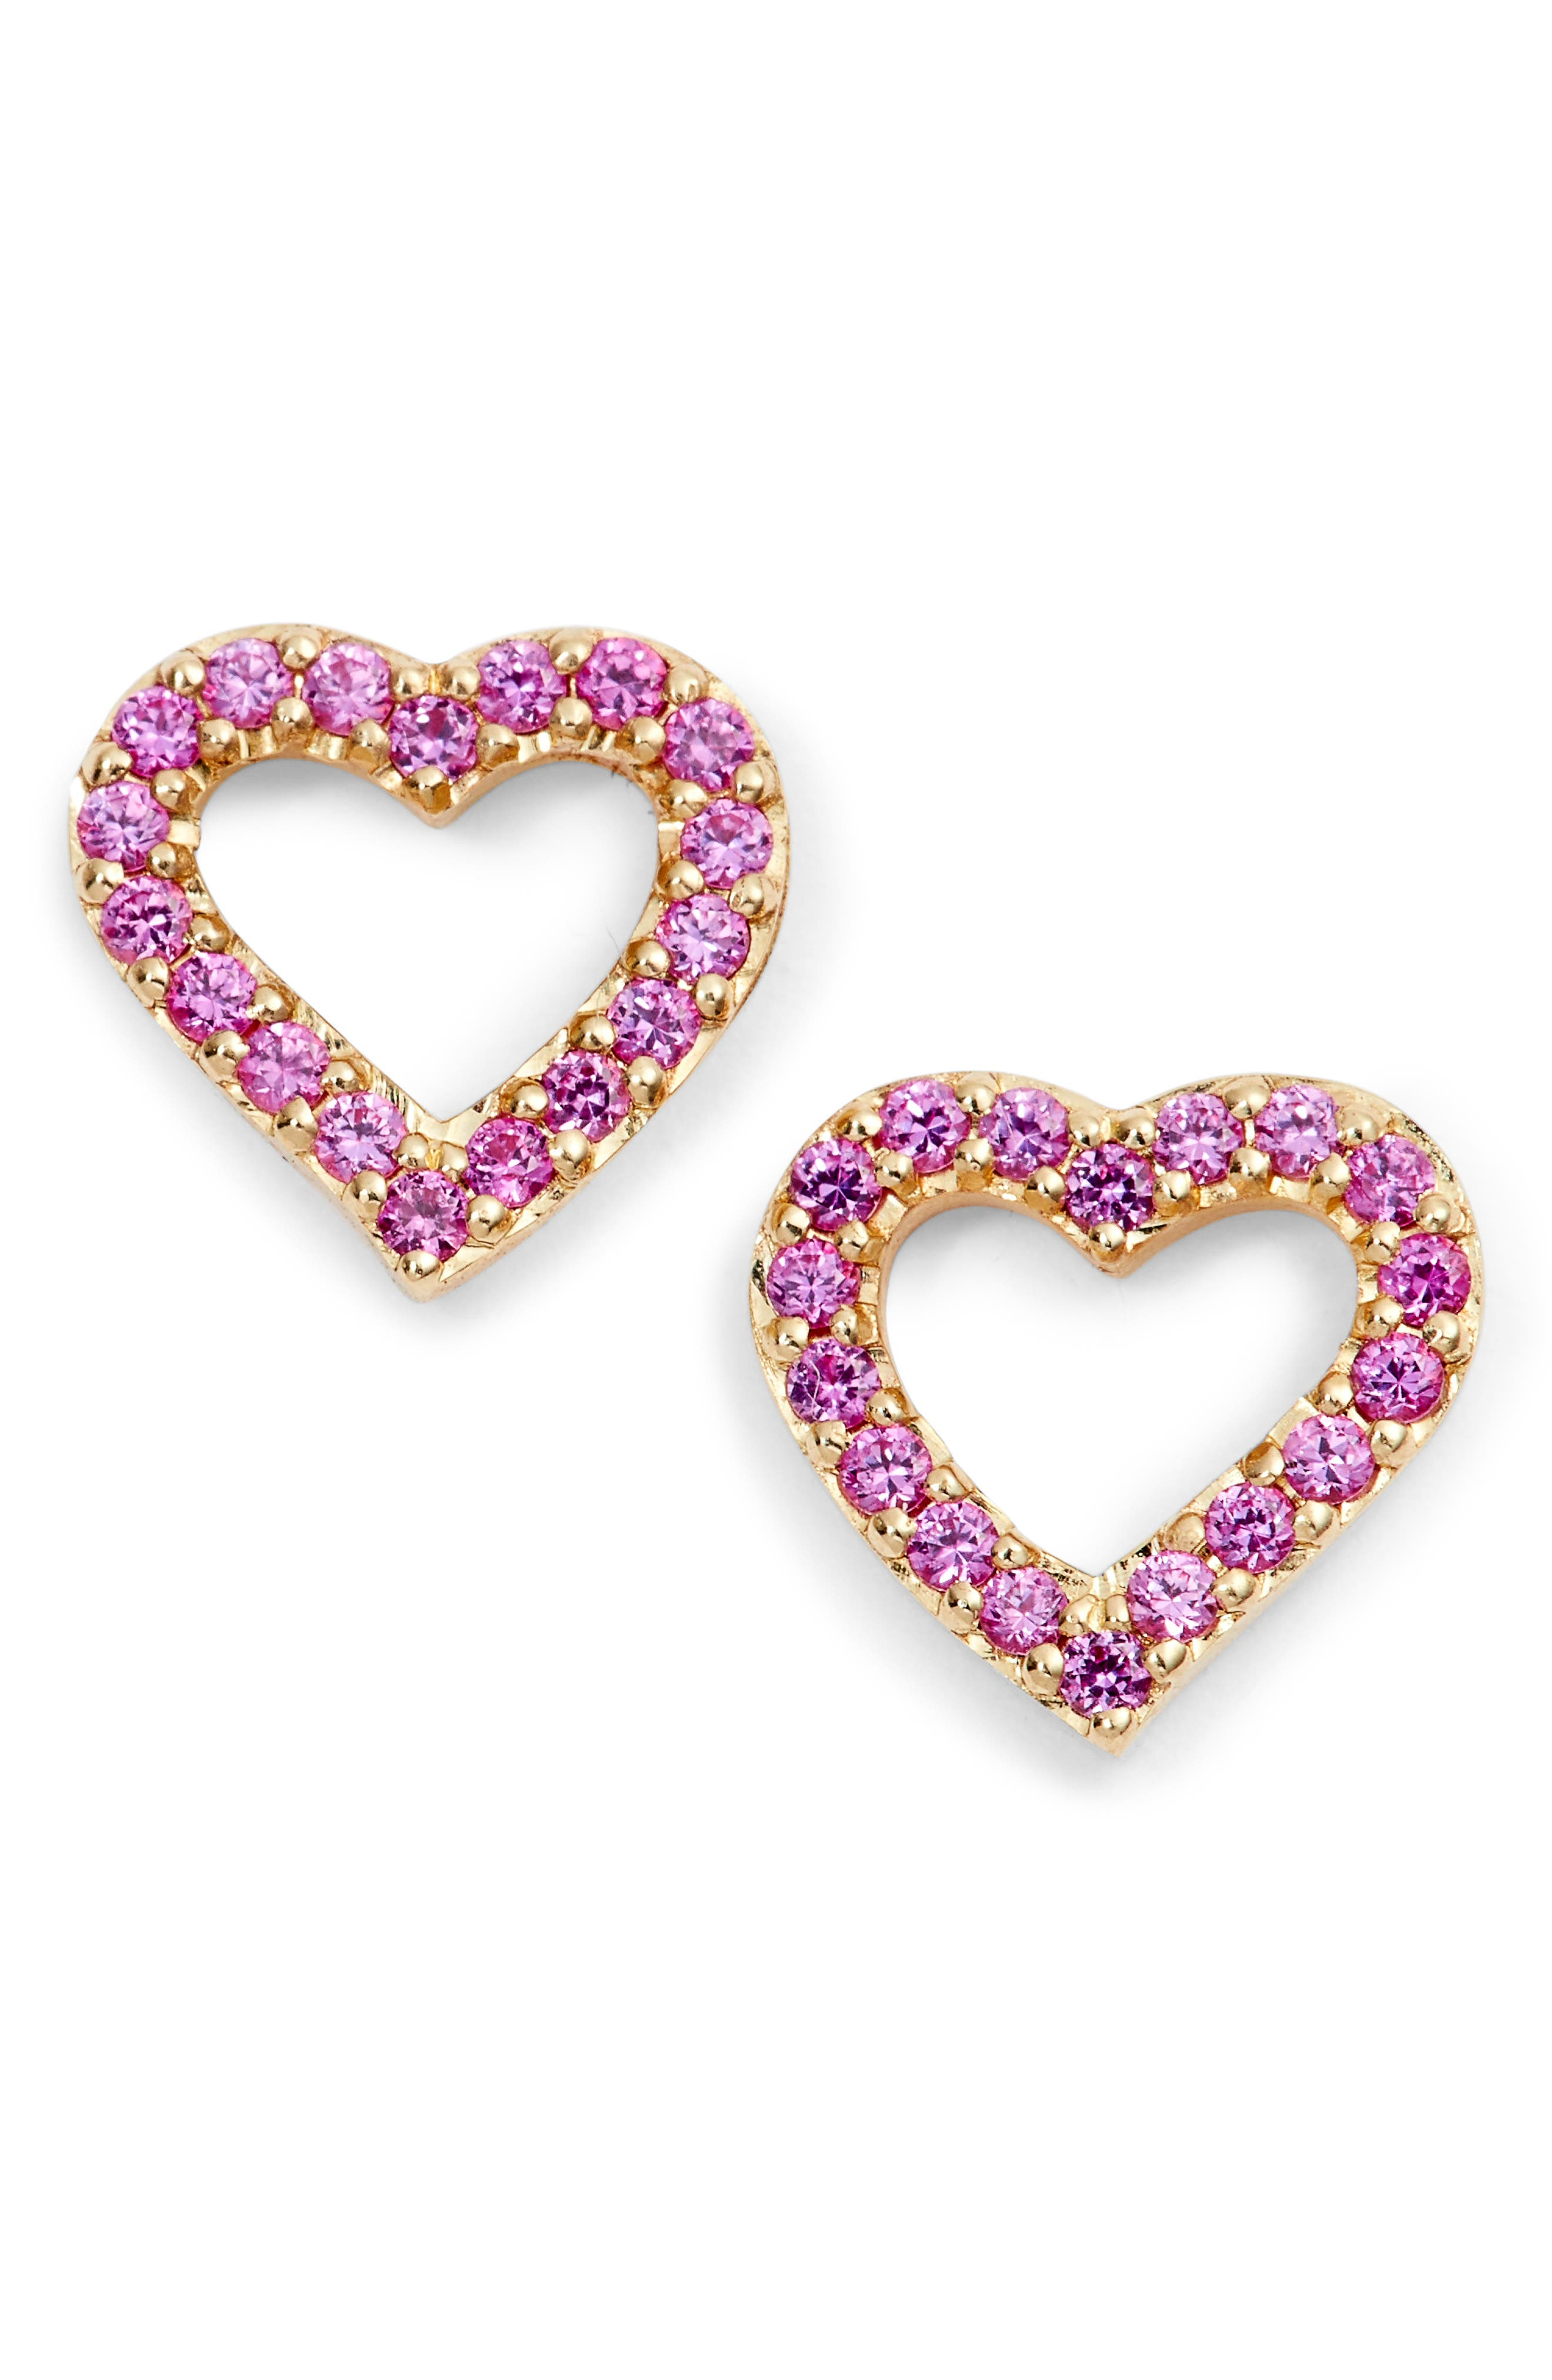 Main Image - Lana Girl by Lana Jewelry Mini Heart Sapphire Stud Earrings (Girls)